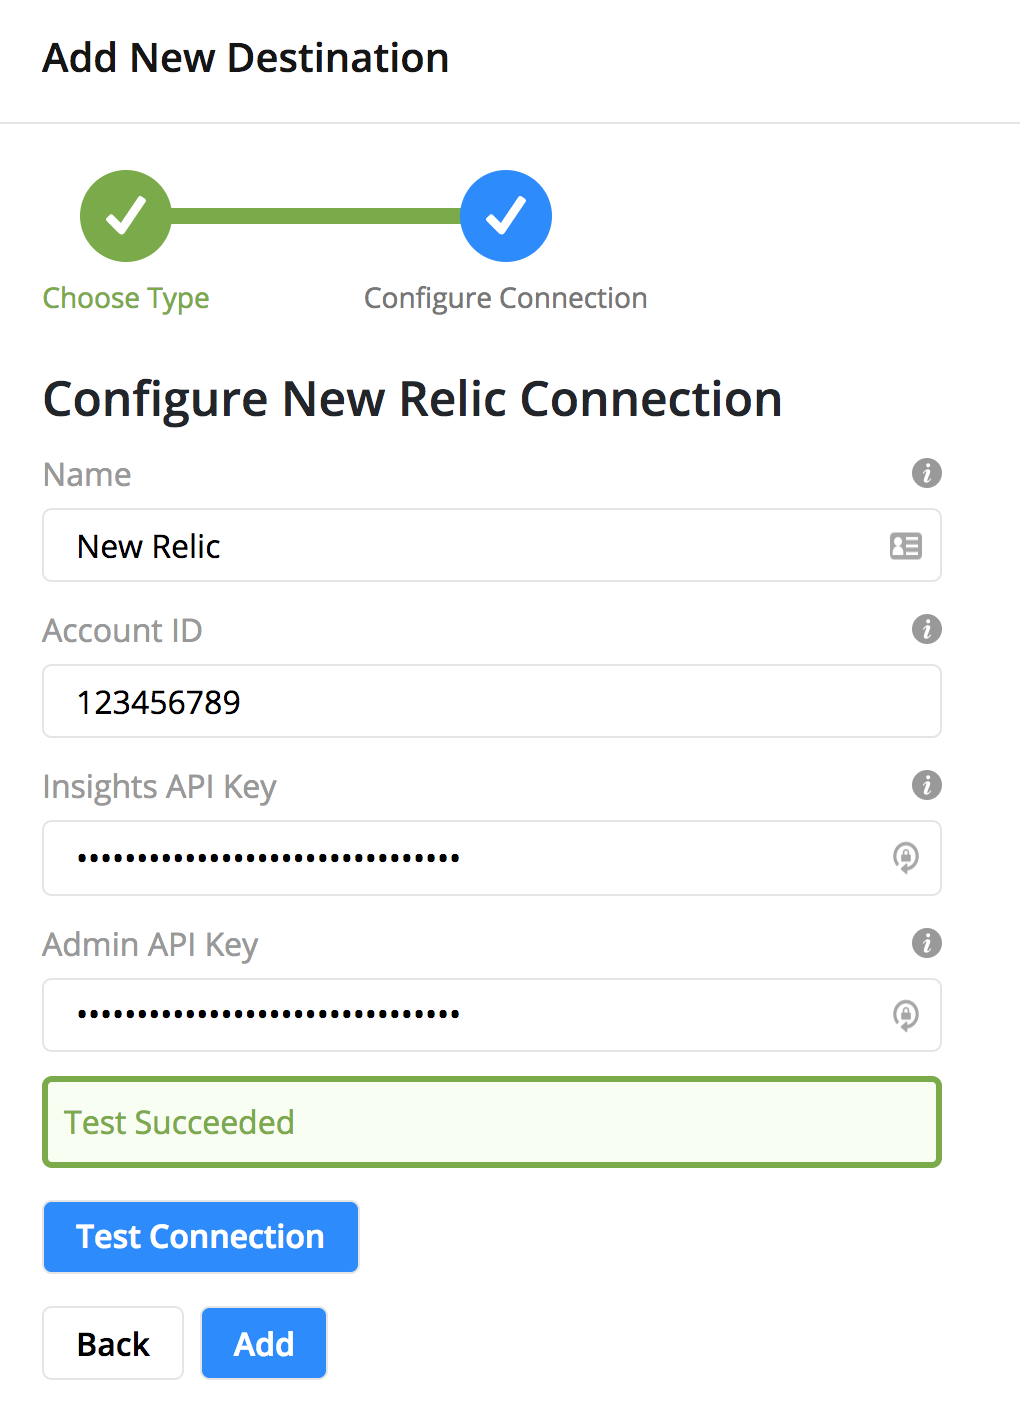 Enter the required fields and click Test Connection, then Add.